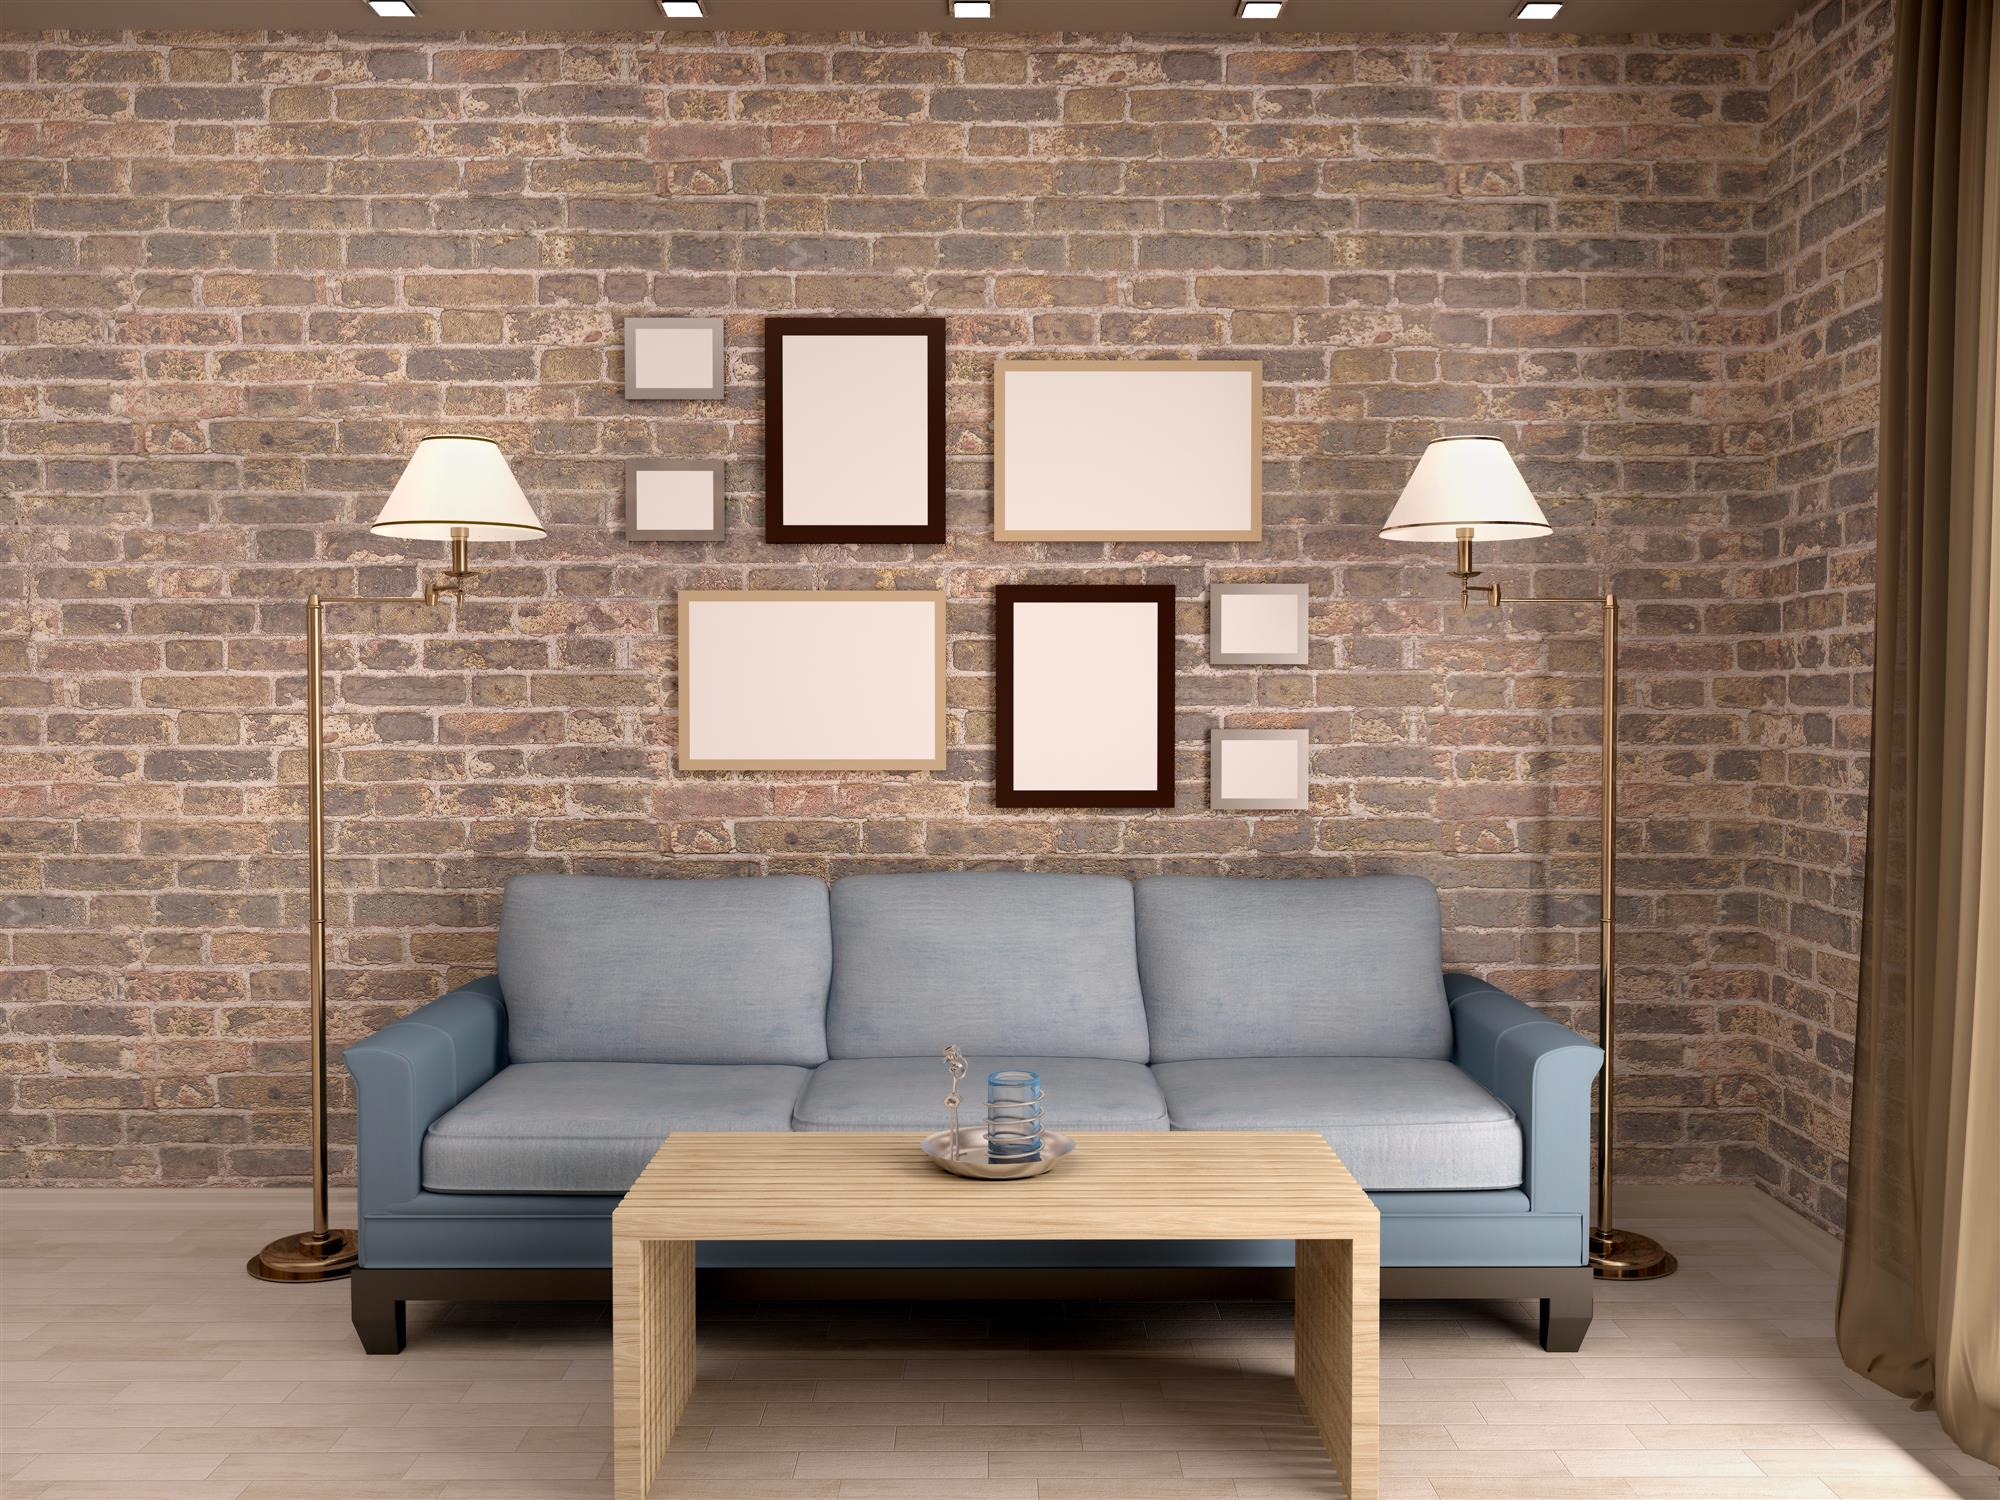 Faux Brick Wallpaper in Living Room